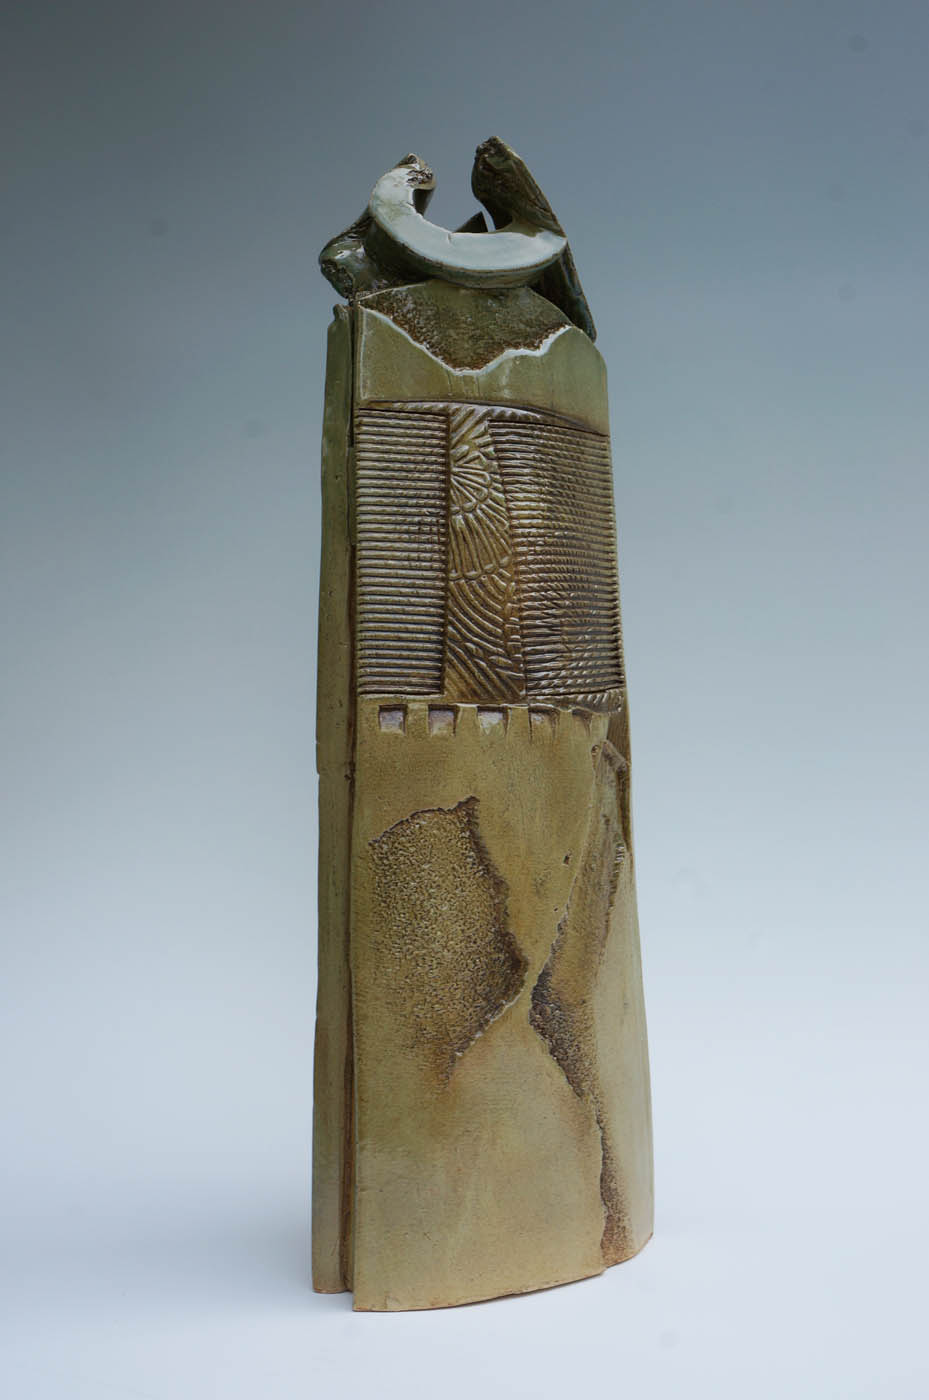 3D tall vase by Robert Piepenburg with earth tones and sculpted with grooves and designs.